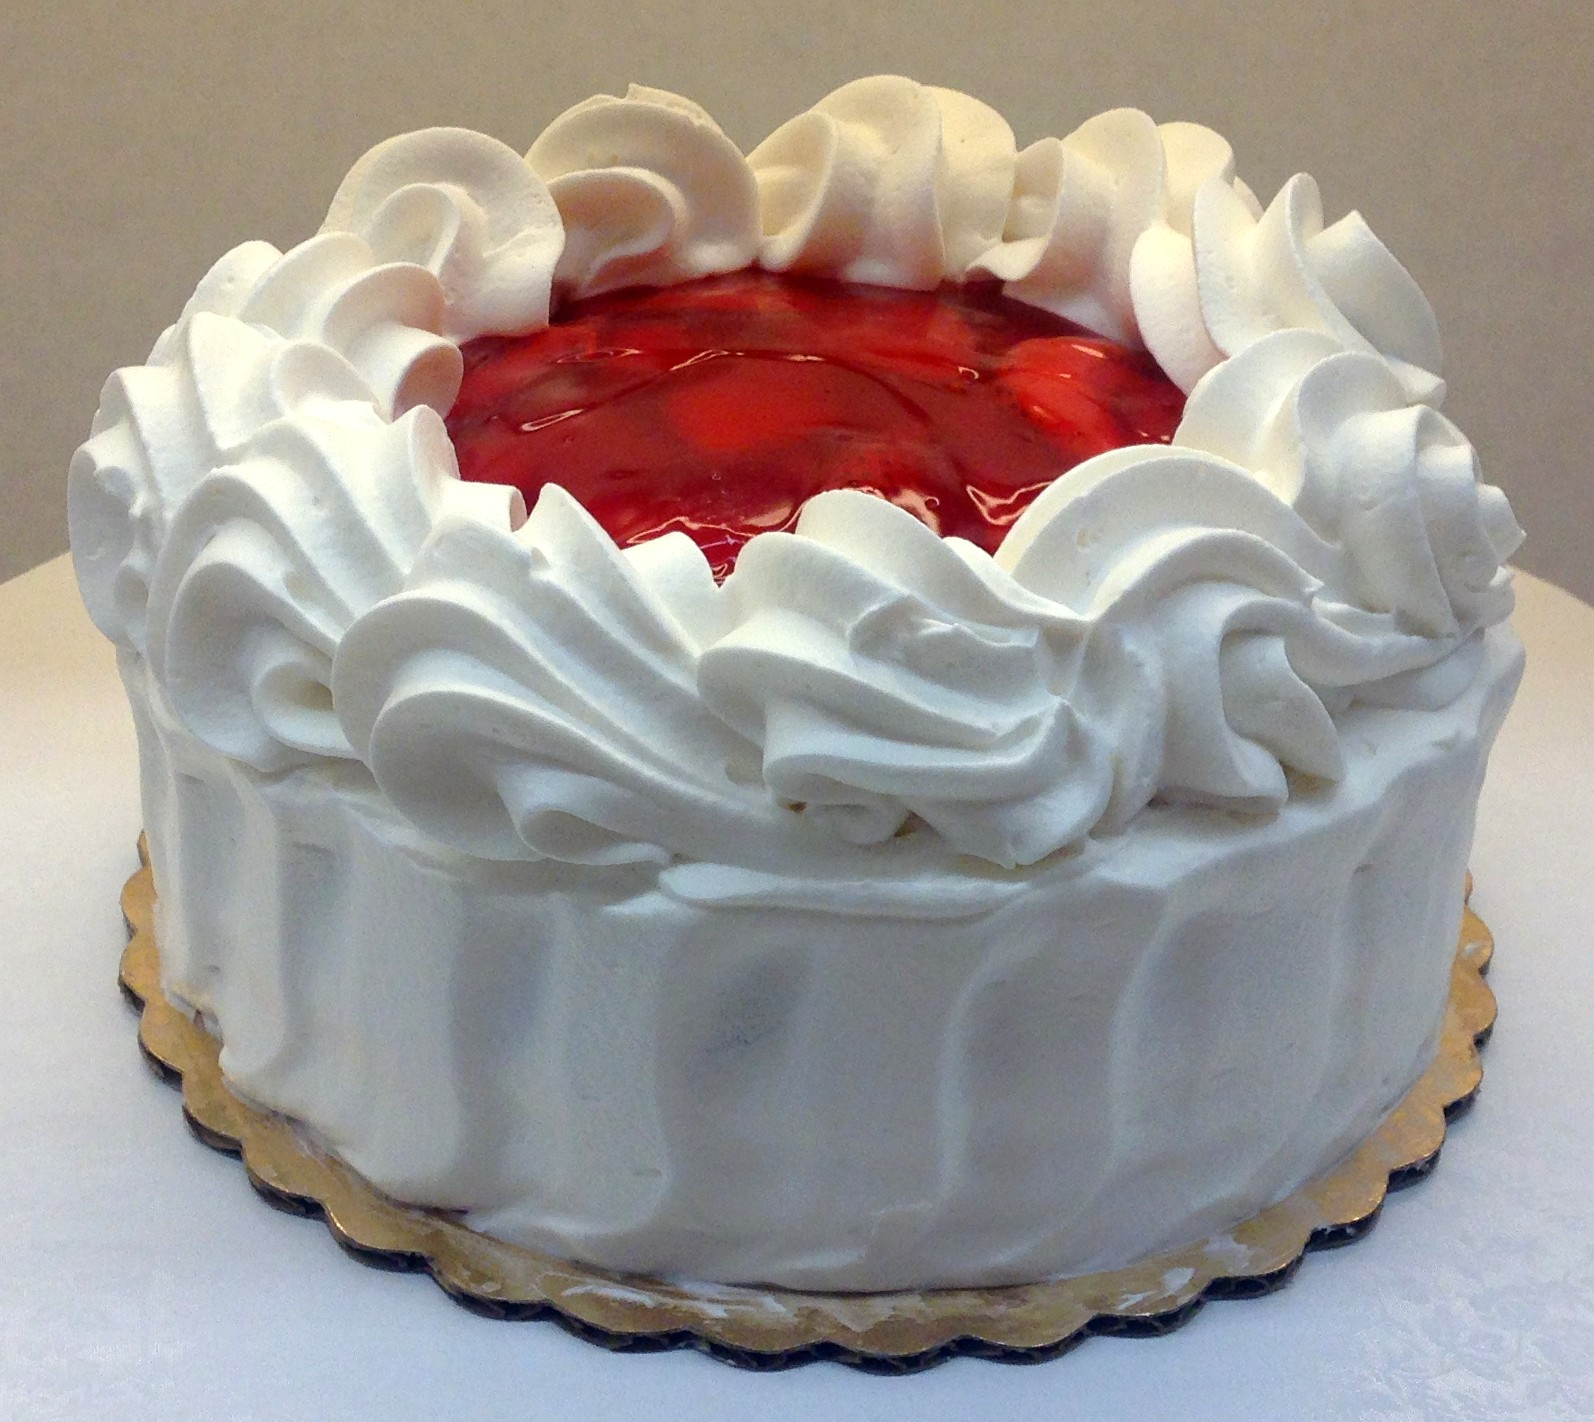 Cake Designs With Whipped Cream : strawberry cake with whipped cream icing